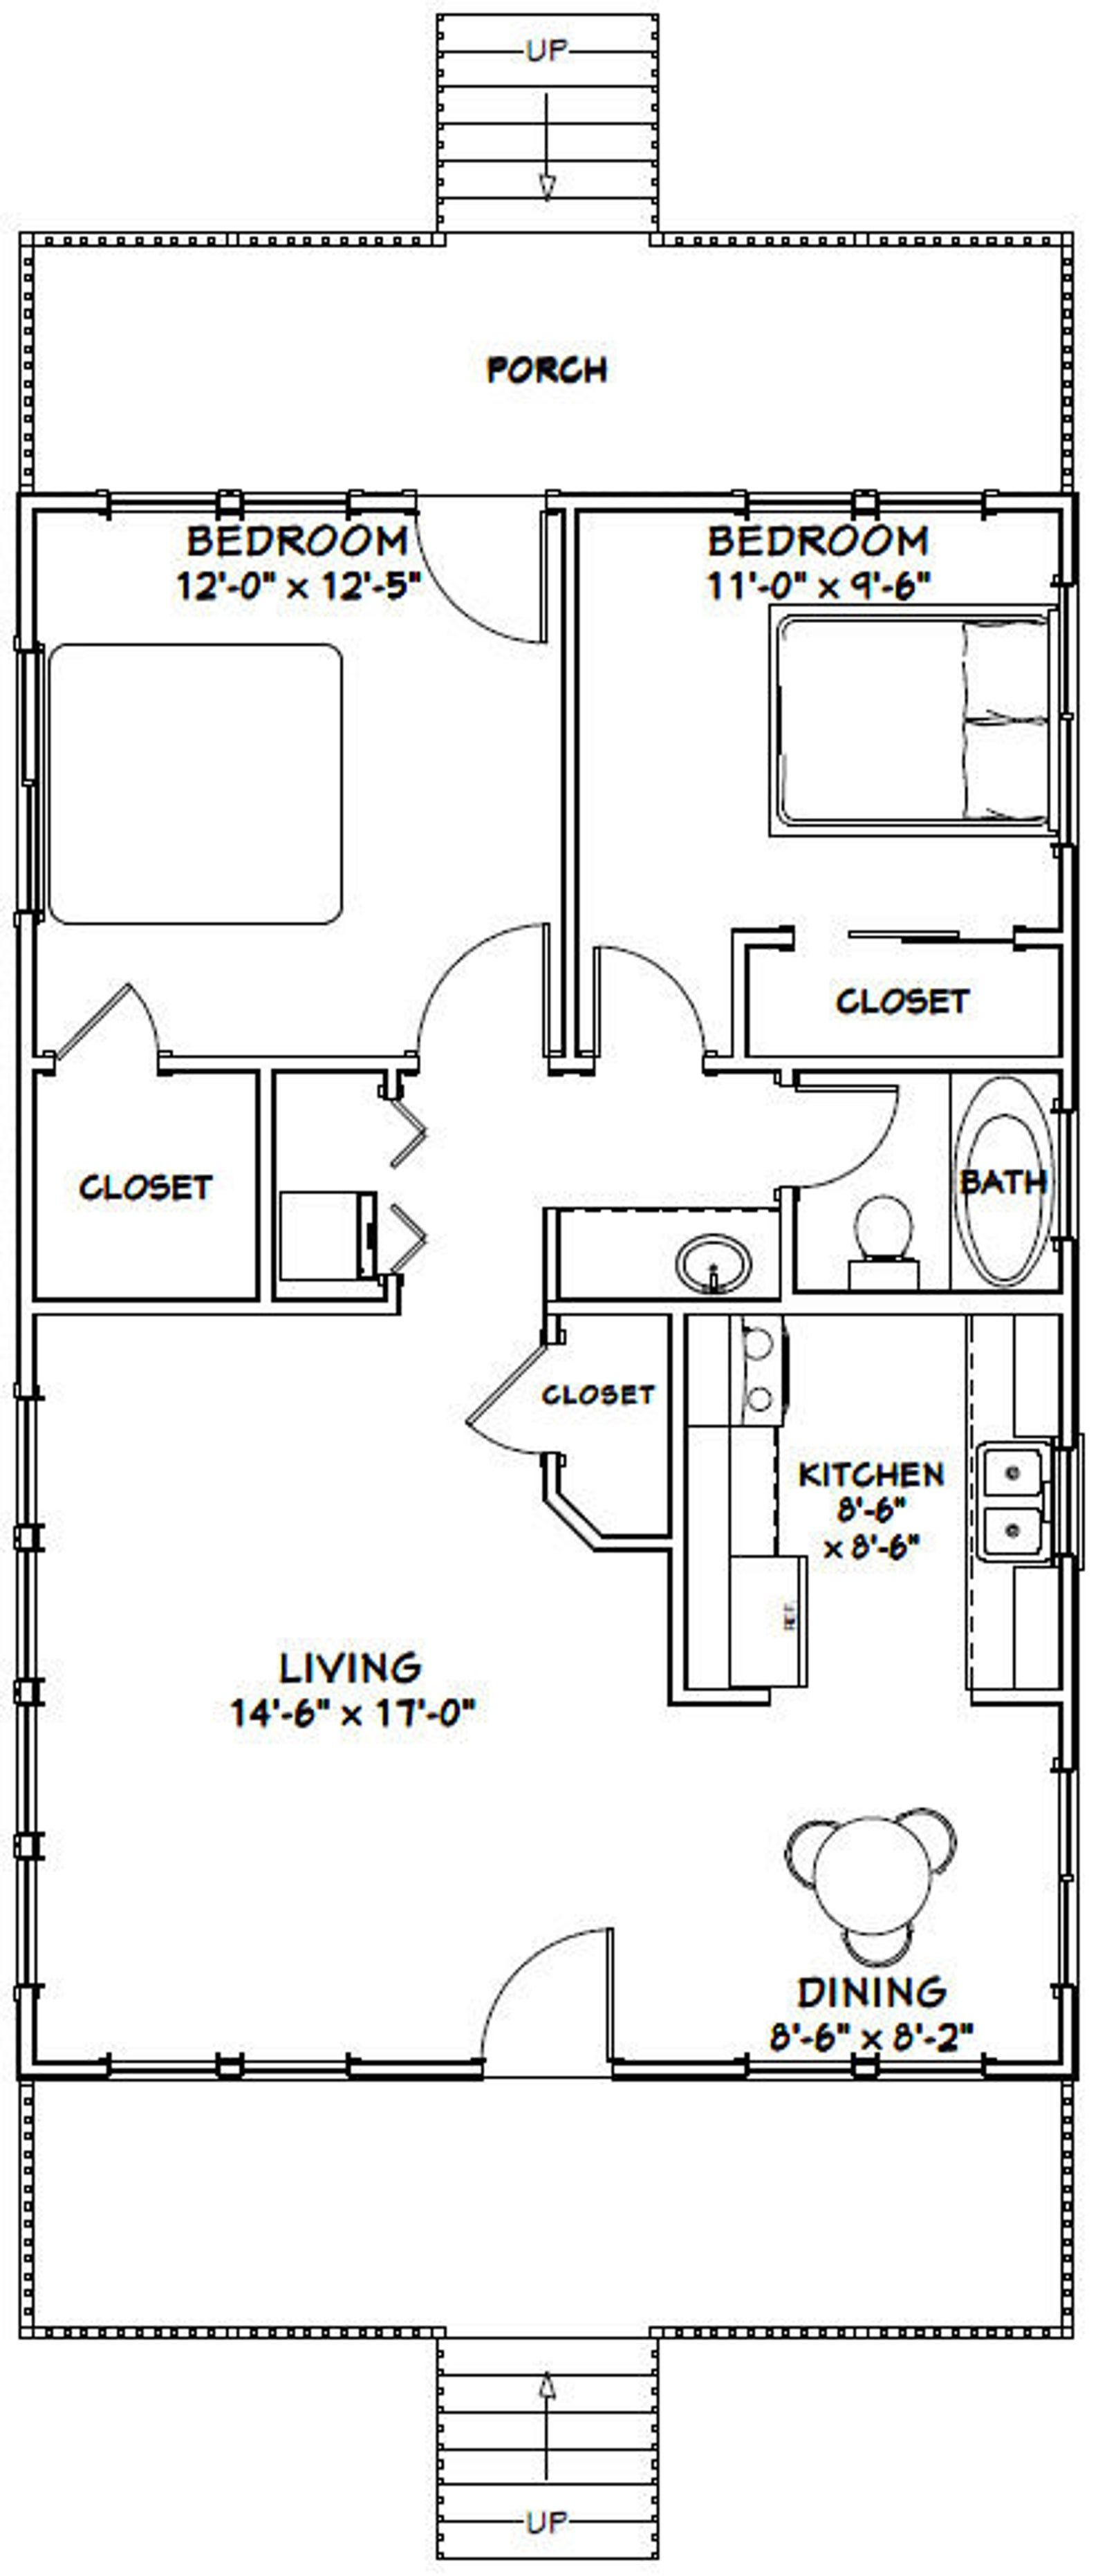 24x36 House 2 Bedroom 1 Bath 864 Sq Ft Pdf Floor Plan Etsy In 2020 Small House Floor Plans Bedroom House Plans Small House Plans